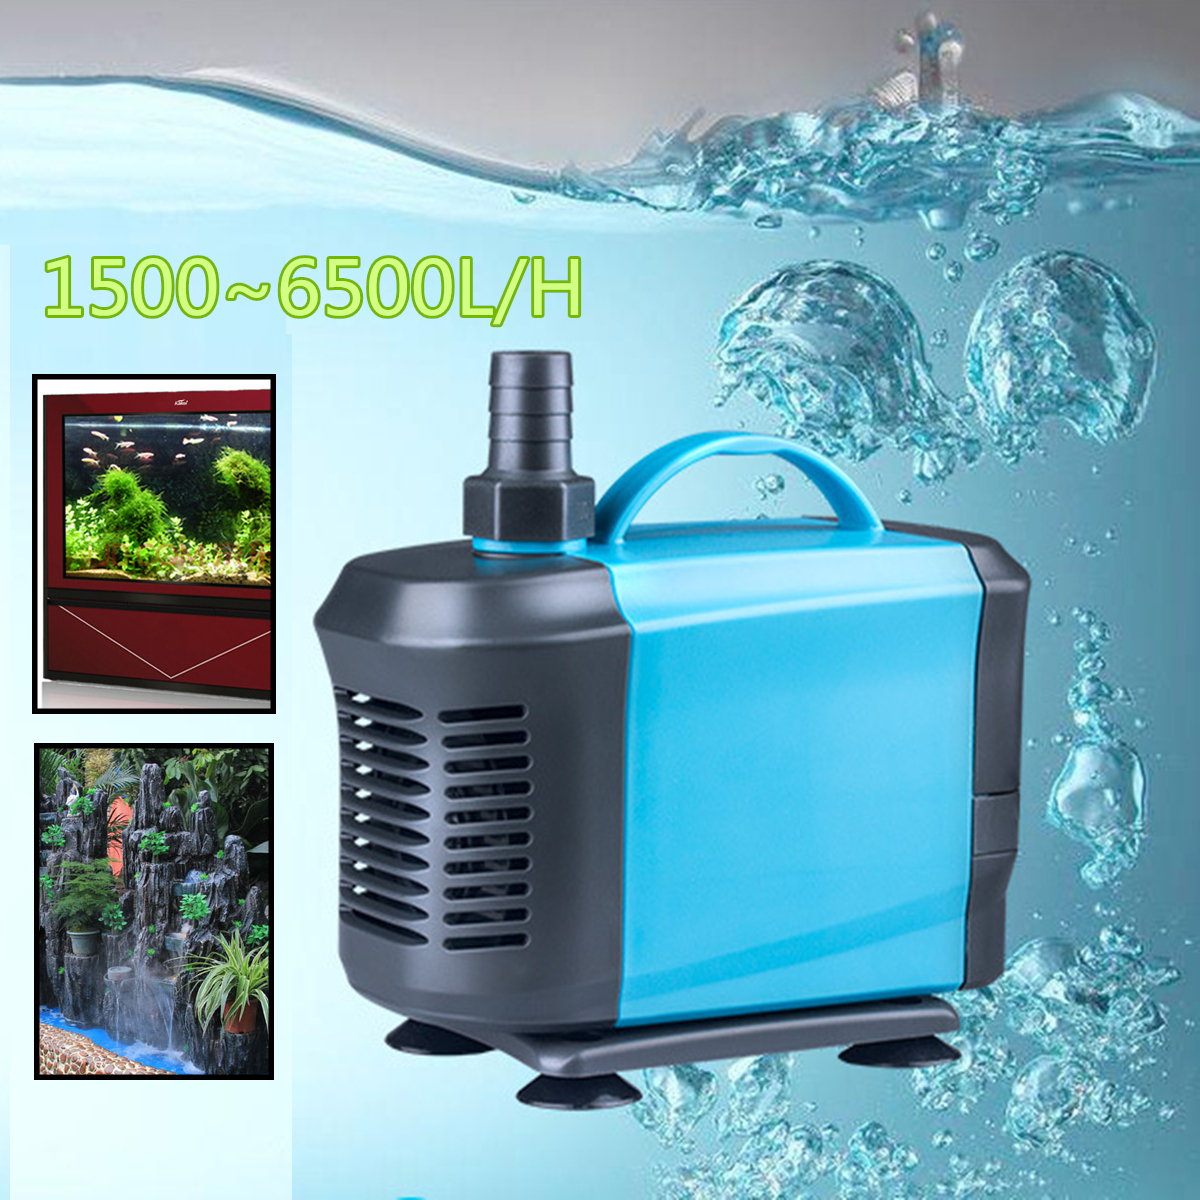 1500~6500L/H Submersible Aquarium Oxygen Pump Pond Fish Tank Silent Water Filter